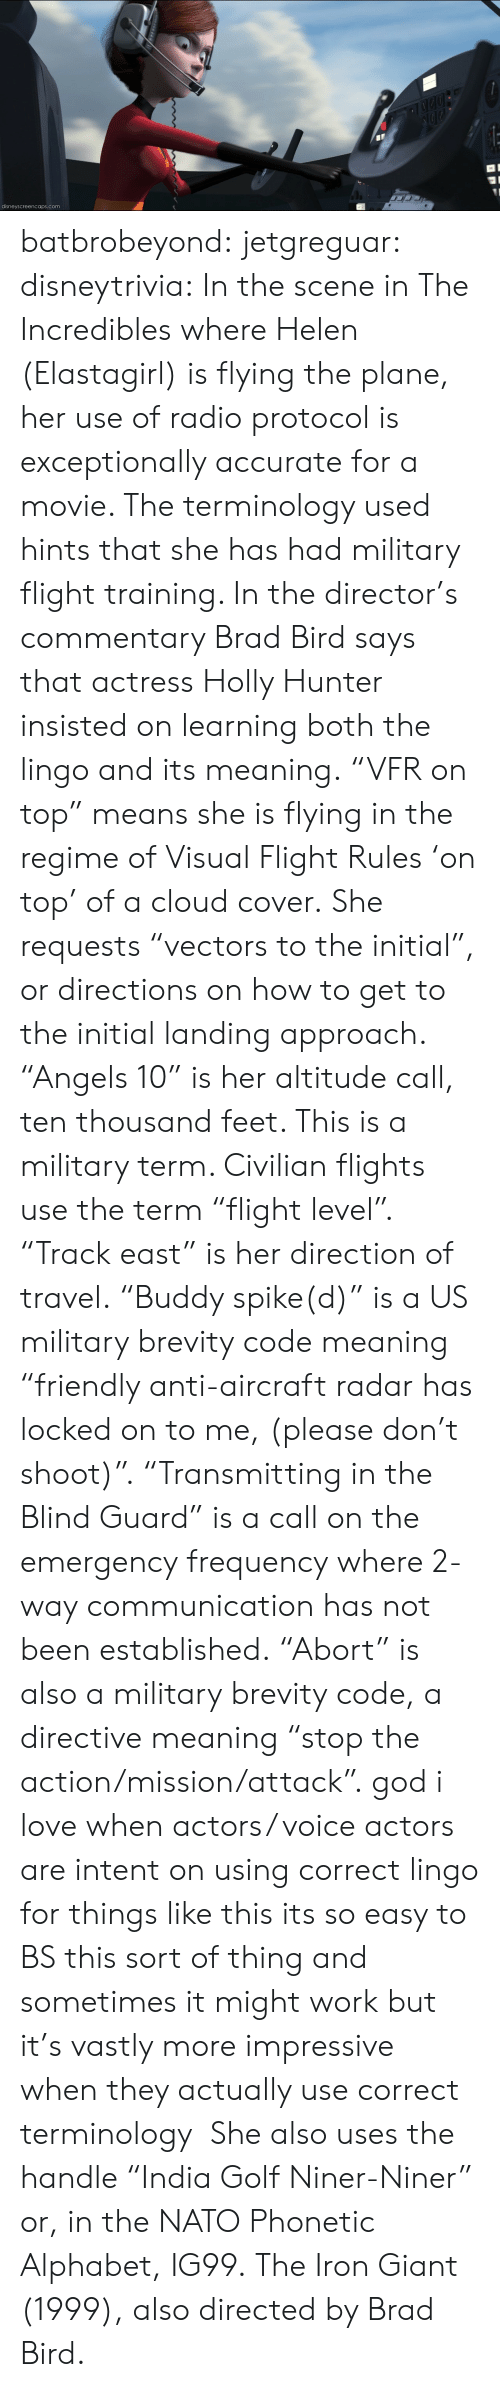 """exceptionally: disneyscreencaps.com batbrobeyond: jetgreguar:  disneytrivia:  In the scene in The Incredibles where Helen (Elastagirl)is flying the plane, heruse of radio protocol is exceptionally accurate for a movie. The terminology used hints that she has had military flight training. In the director's commentary Brad Birdsays that actressHolly Hunter insisted on learning both the lingo and its meaning. """"VFR on top"""" means she is flying in the regime of Visual Flight Rules 'on top' of a cloud cover. She requests """"vectors to the initial"""", ordirections onhow to get to the initial landing approach. """"Angels 10"""" is her altitude call, ten thousand feet. This is a military term. Civilian flights use the term """"flight level"""". """"Track east"""" is her direction of travel. """"Buddy spike(d)"""" is a US military brevity code meaning """"friendly anti-aircraft radar has locked on to me, (please don't shoot)"""". """"Transmitting in the Blind Guard"""" is a call on the emergency frequency where 2-way communication has not been established. """"Abort"""" is also a military brevity code, a directive meaning """"stop the action/mission/attack"""".  god i love when actors/ voice actors are intent on using correct lingo for things like this its so easy to BS this sort of thing and sometimes it might work but it's vastly more impressive when they actually use correct terminology  She also uses the handle """"India Golf Niner-Niner"""" or, in the NATO Phonetic Alphabet, IG99. The Iron Giant (1999), also directed by Brad Bird."""